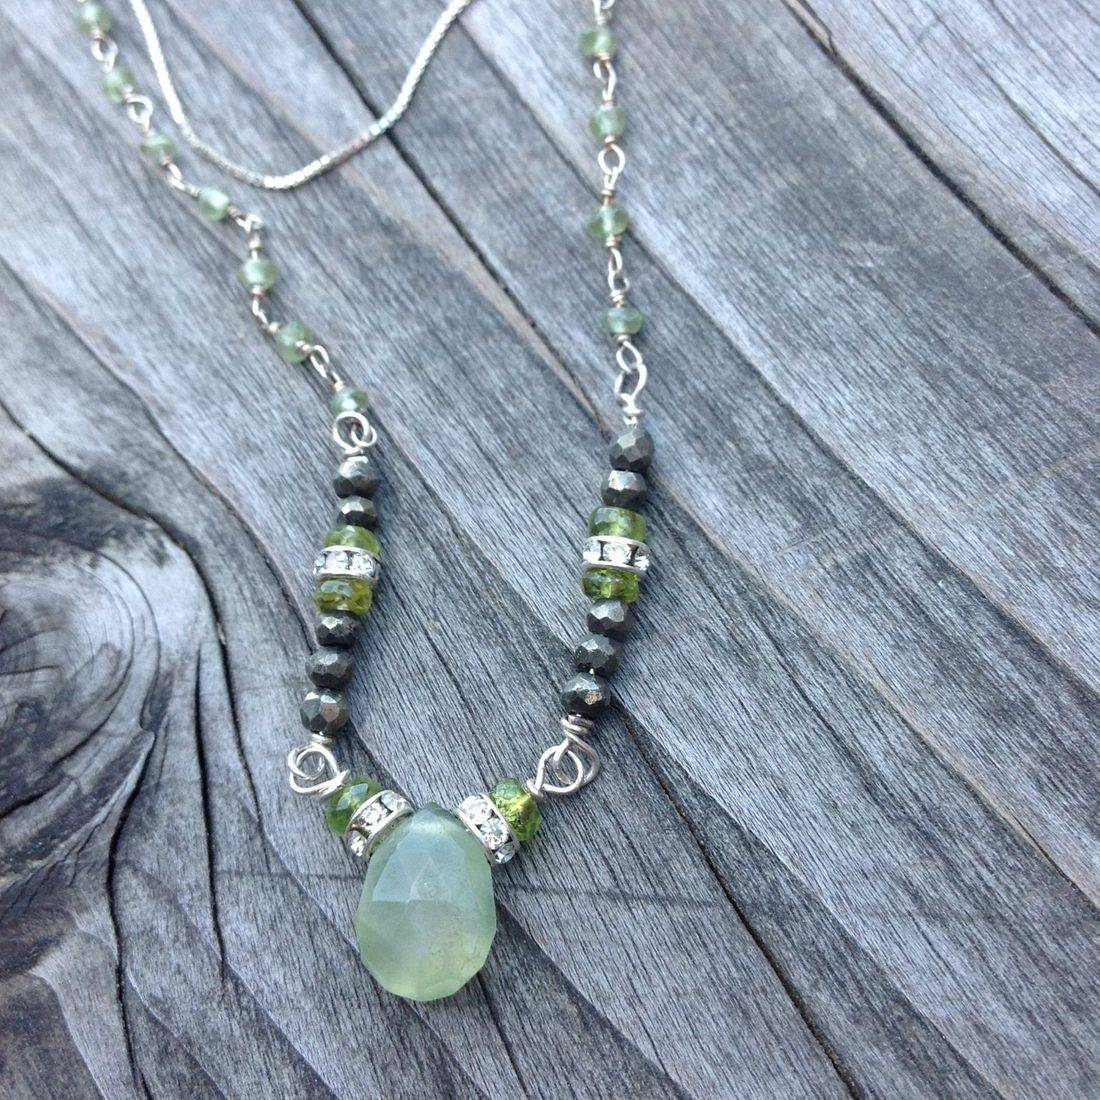 green garnet, sterling silver necklace, with gemstone beads, swarovski crystal spacers,